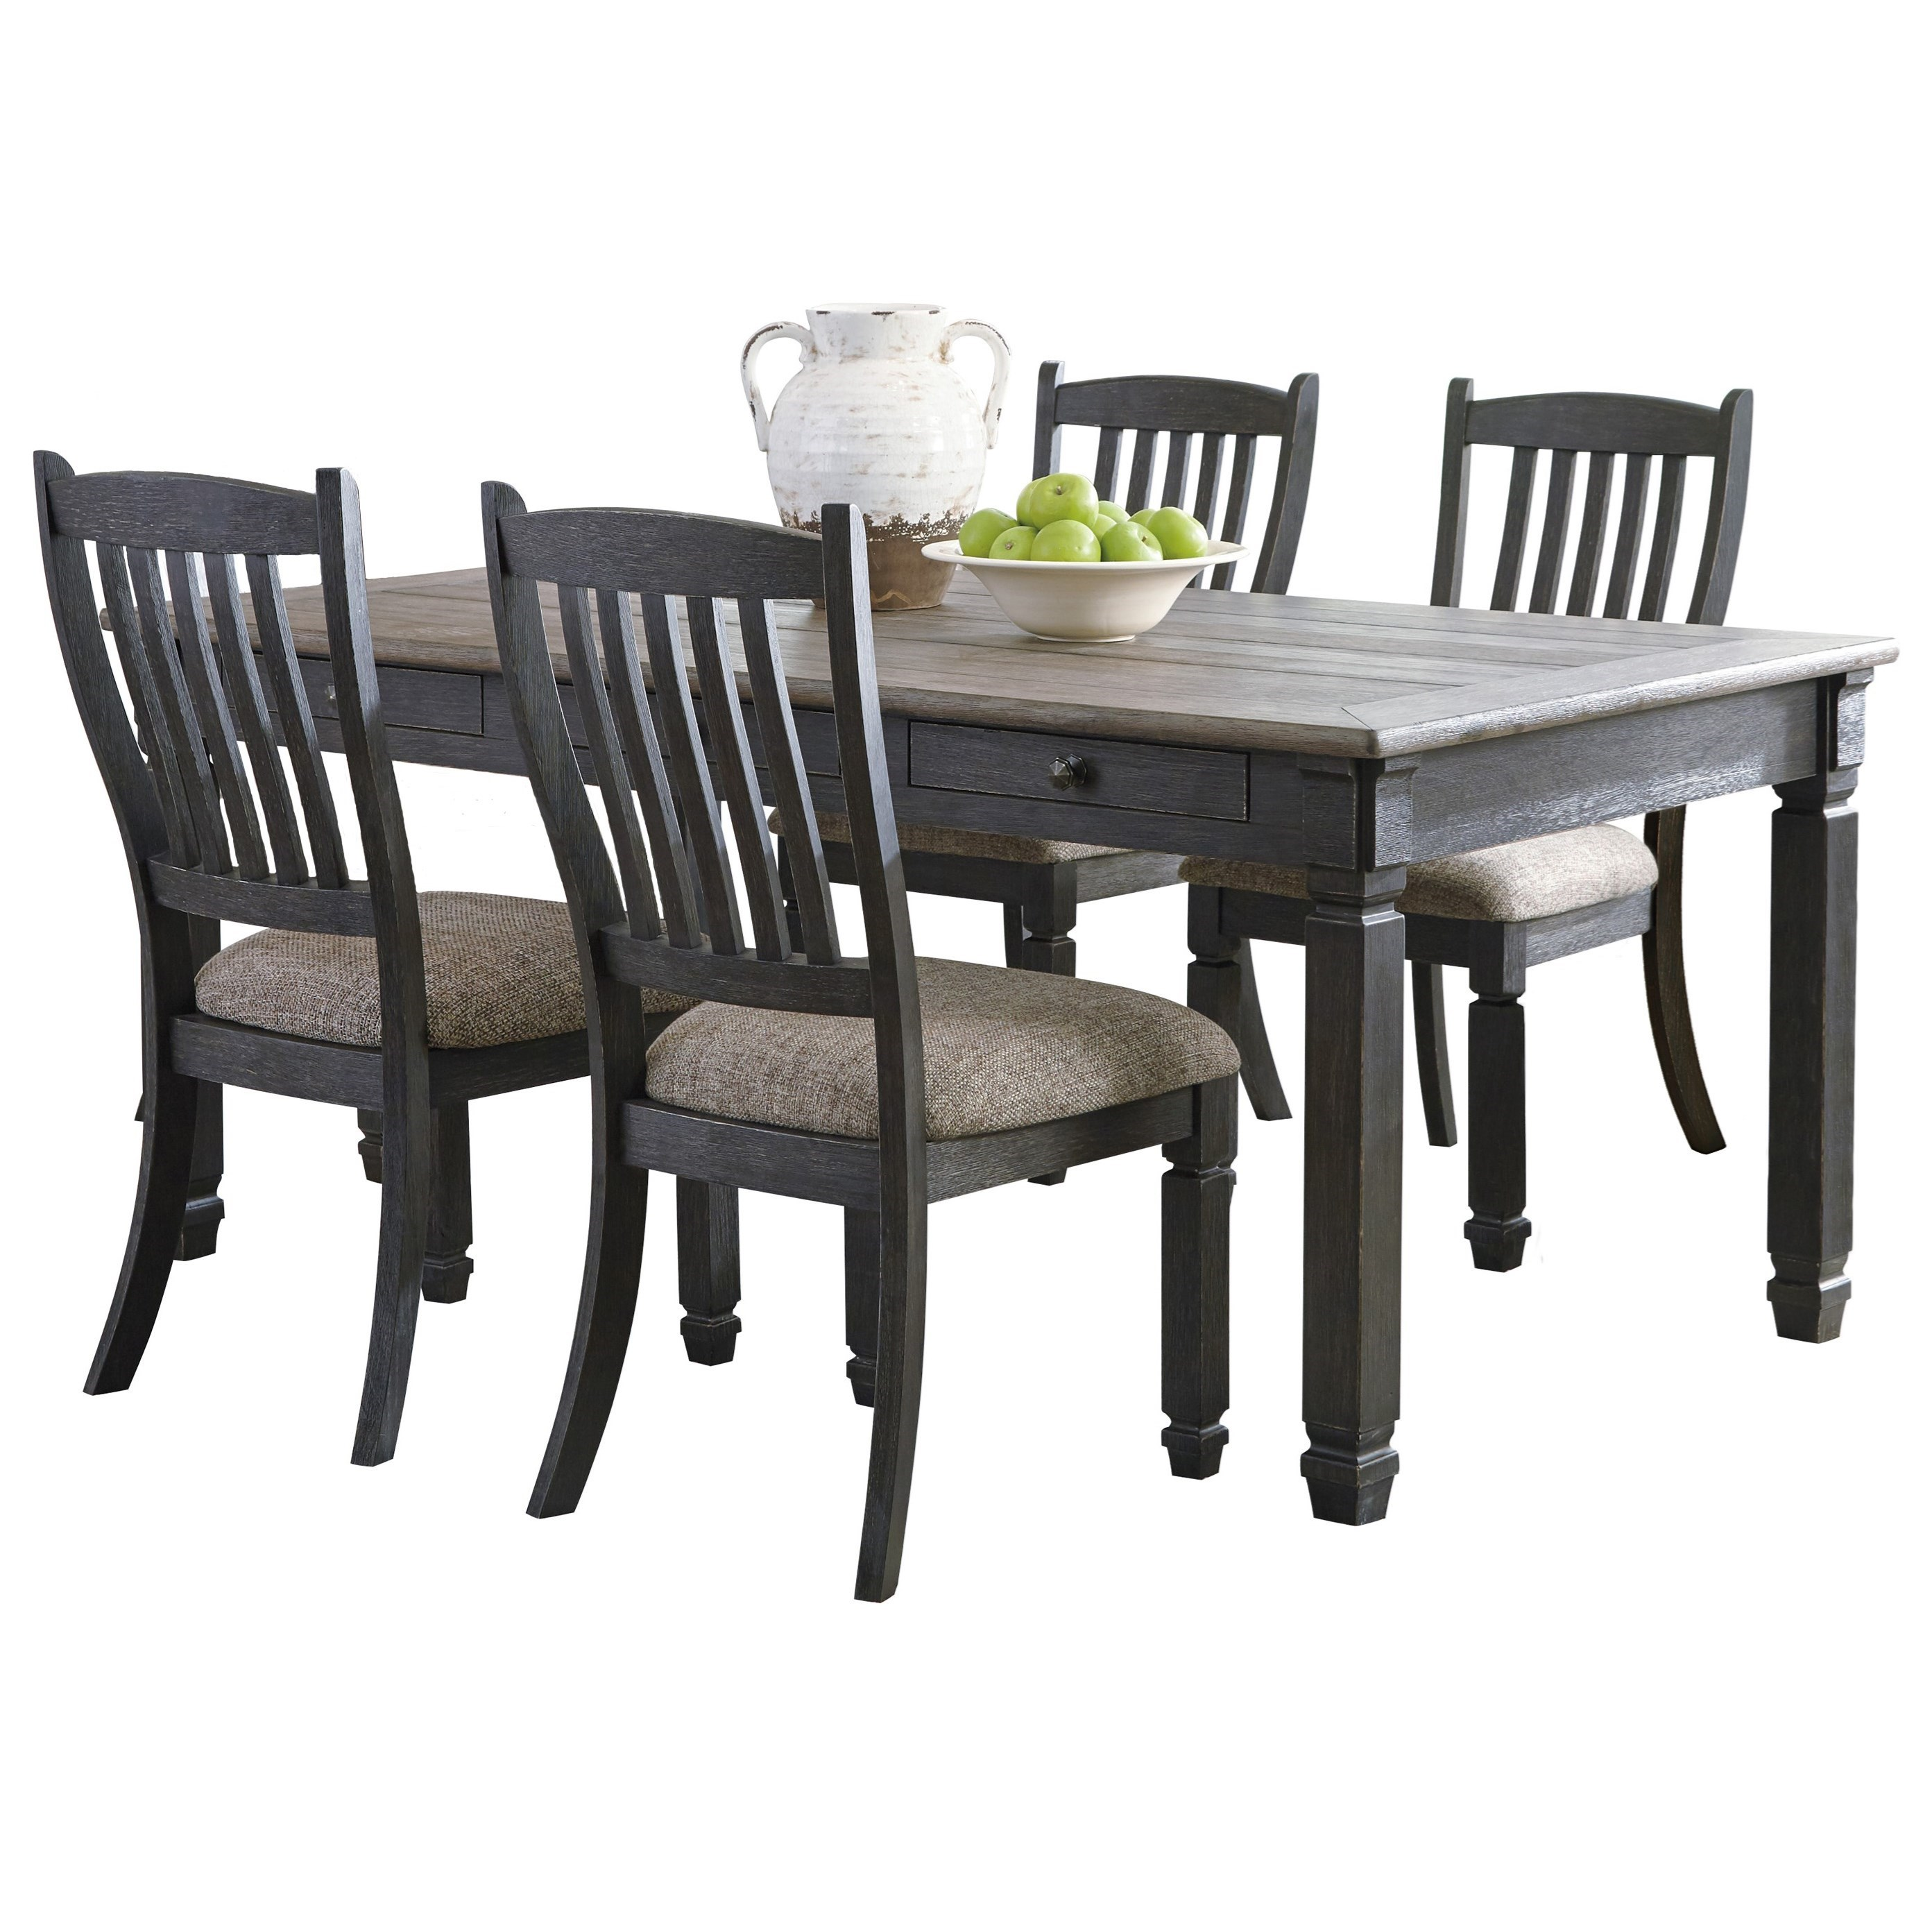 Tyler Creek 5-Piece Table and Chair Set by Signature Design by Ashley at Beck's Furniture